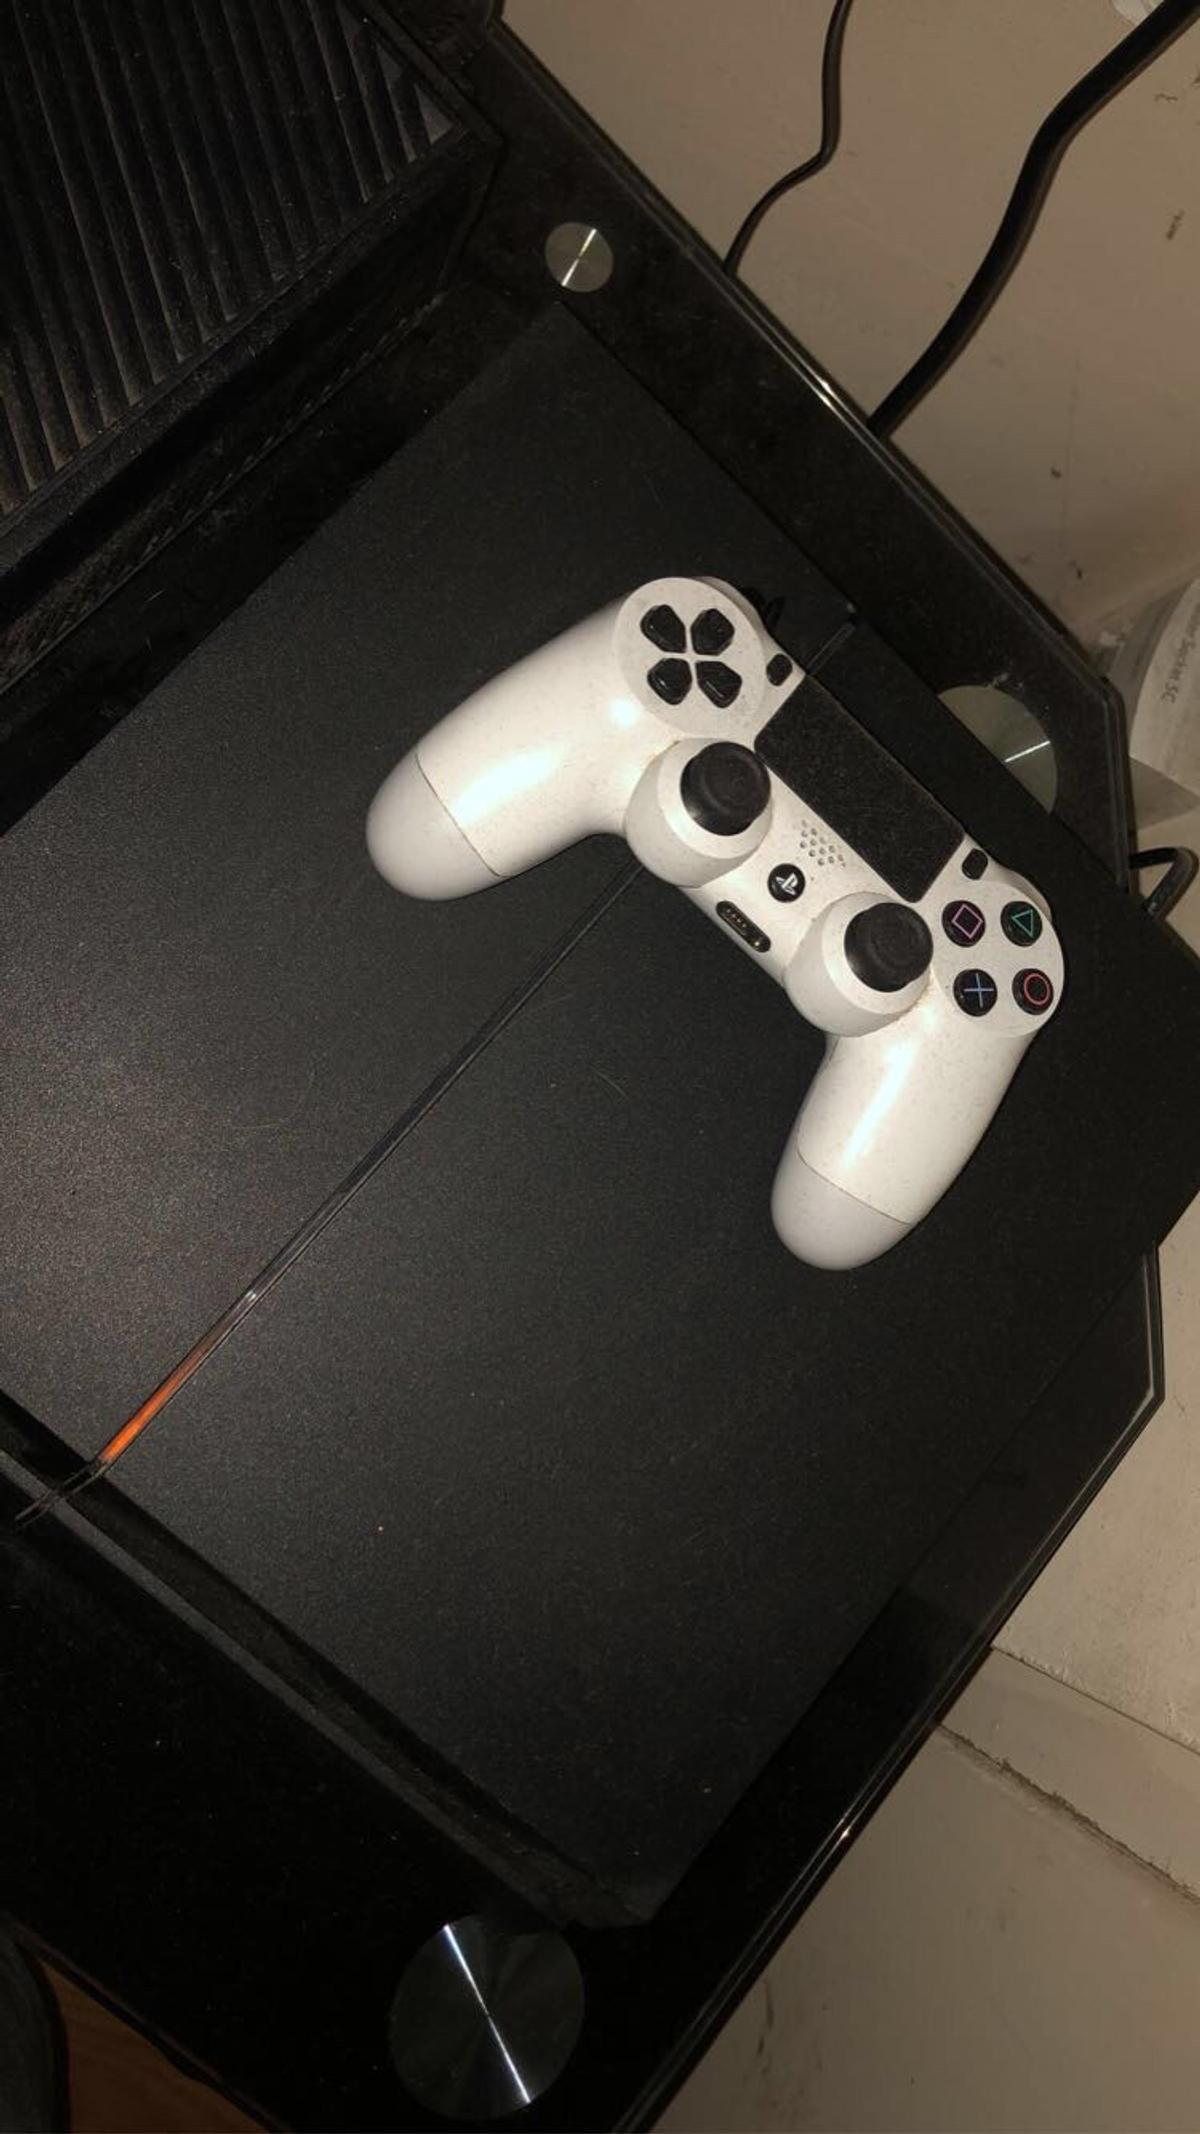 Mint condition pad a little stiff but no other problems